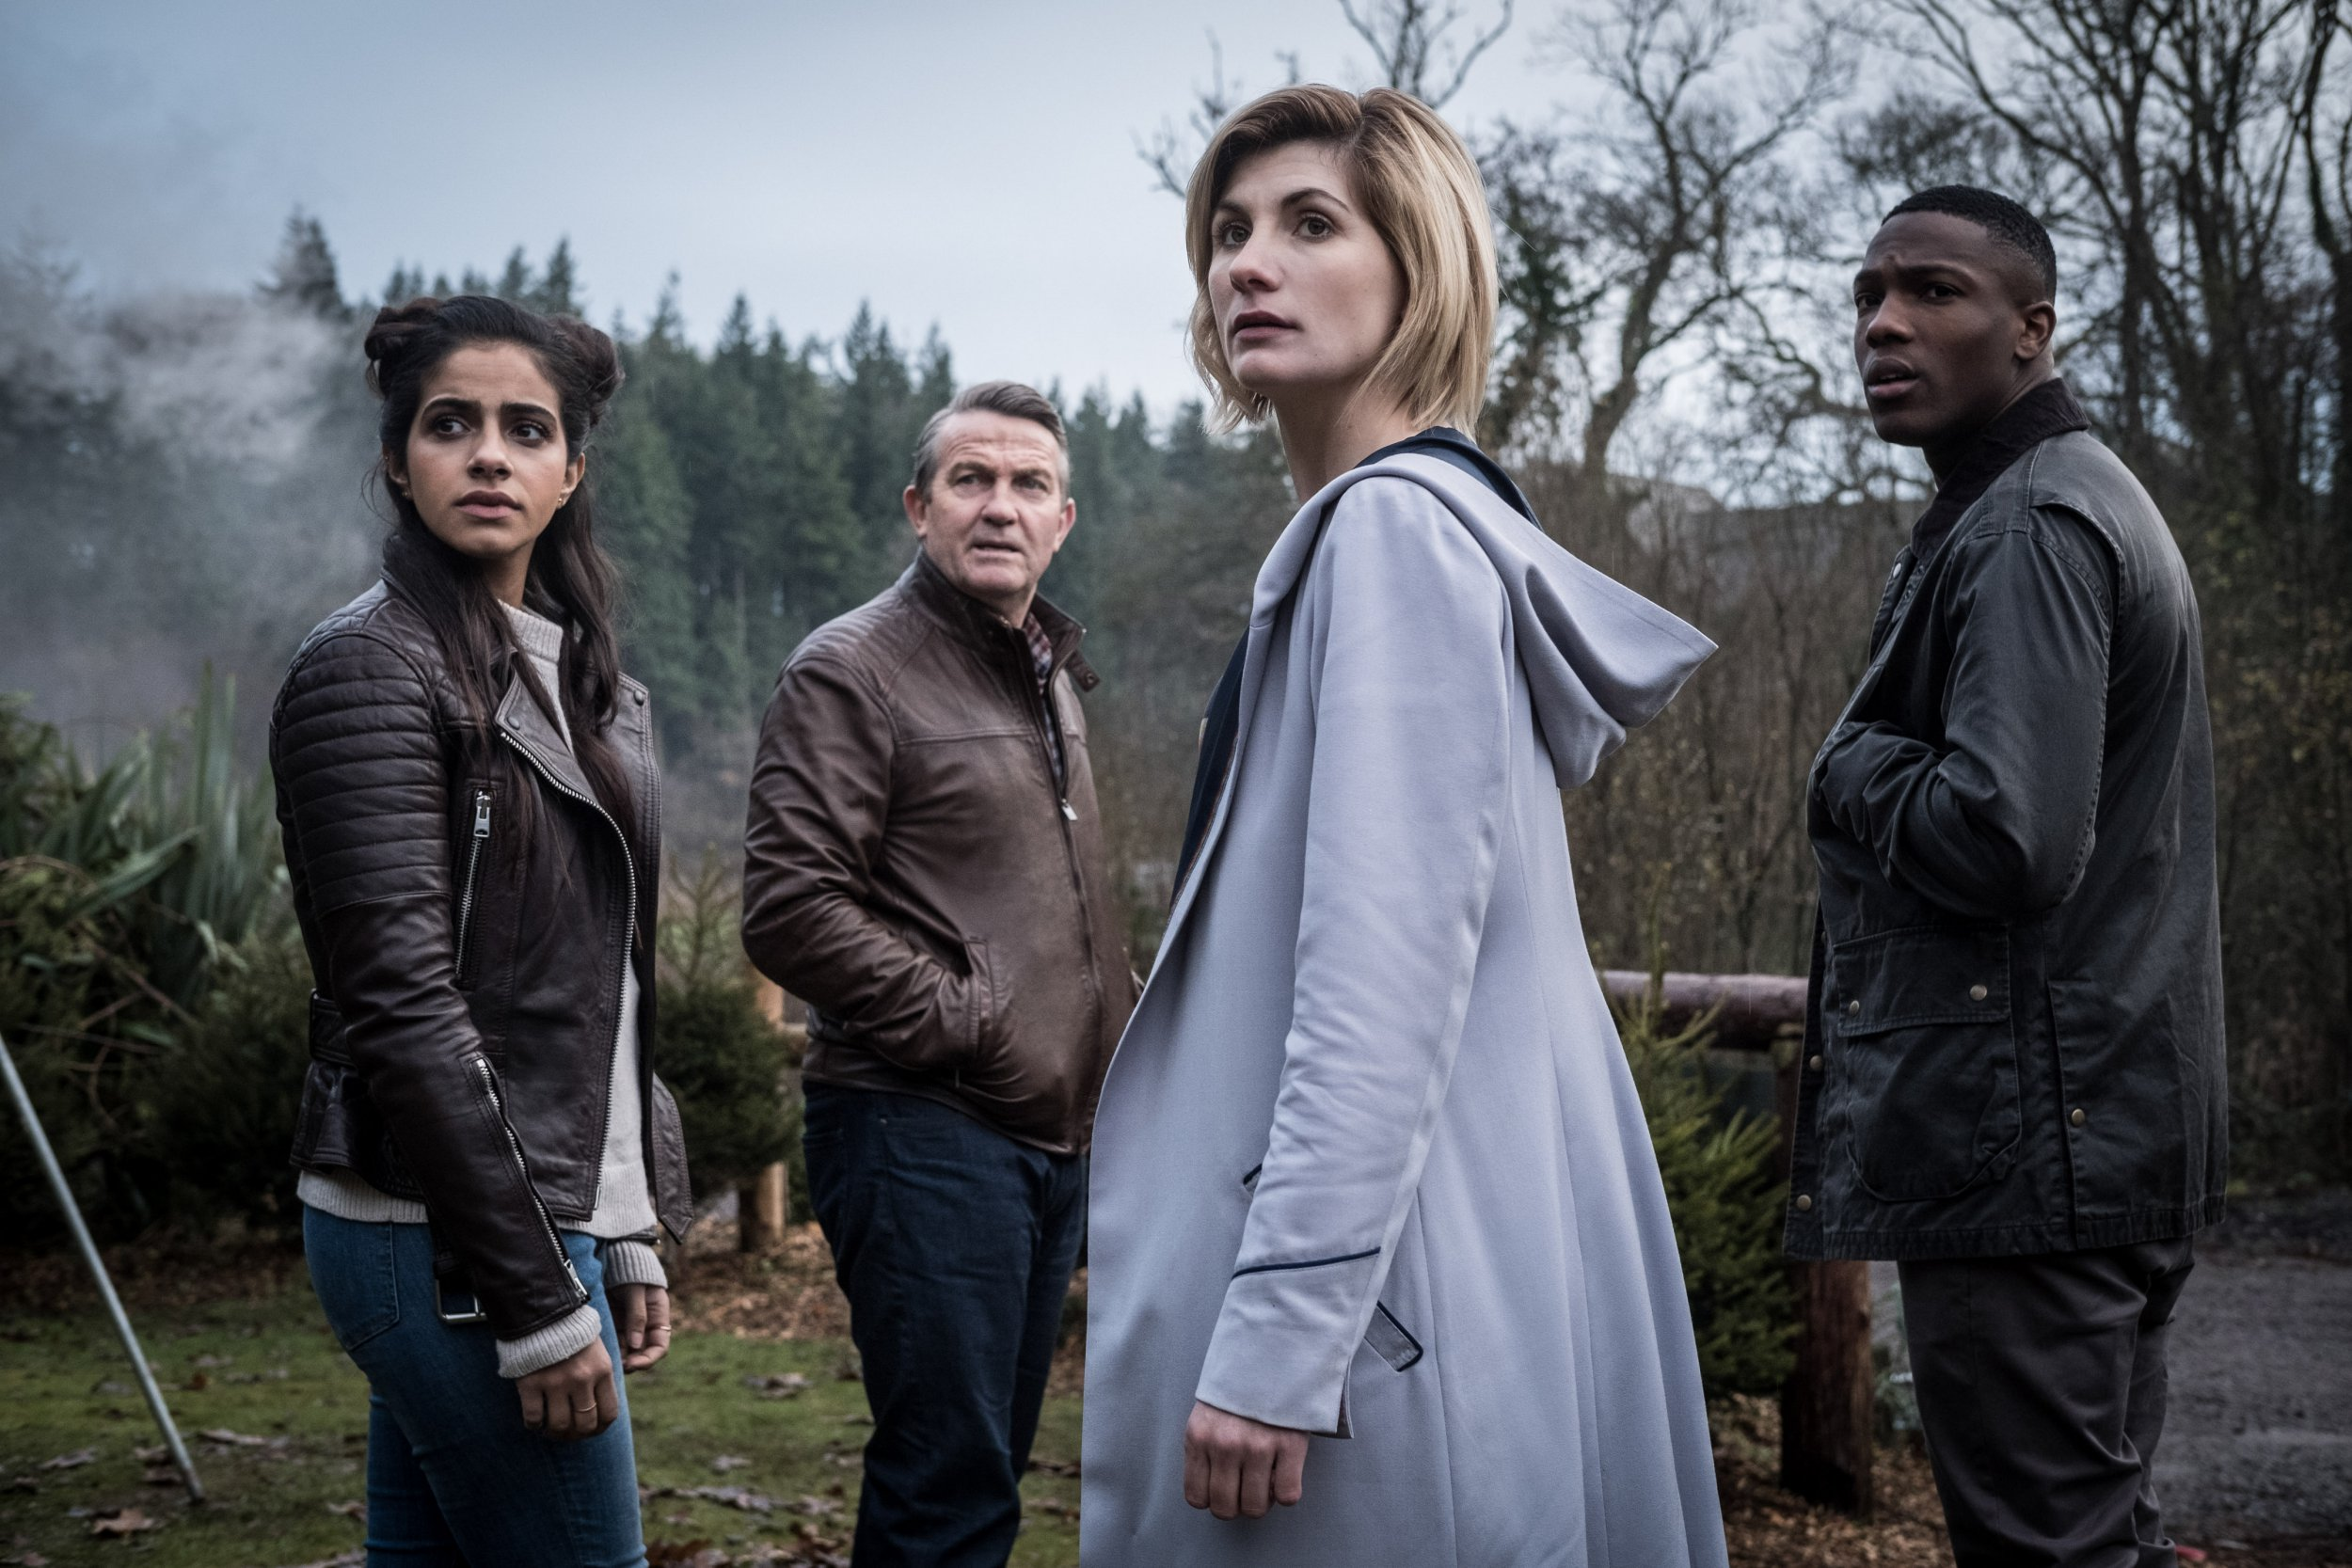 Television programme, 'Dr Who', TX BBC Yaz (MANDIP GILL), Graham (BRADLEY WALSH), The Doctor (JODIE WHITTAKER), Ryan (TOSIN COLE) - (C) BBC / BBC Studios - Photographer: Giles Kyte WARNING: Embargoed for publication until 00:00:01 on 18/07/2018 - Programme Name: Doctor Who Series 11 - TX: n/a - Episode: July Preview (No. n/a) - Picture Shows: **Strictly Embargoed until 18/07/2018 00:00:01** Yaz (MANDIP GILL), Graham (BRADLEY WALSH), The Doctor (JODIE WHITTAKER), Ryan (TOSIN COLE) - (C) BBC / BBC Studios - Photographer: Giles Kyte